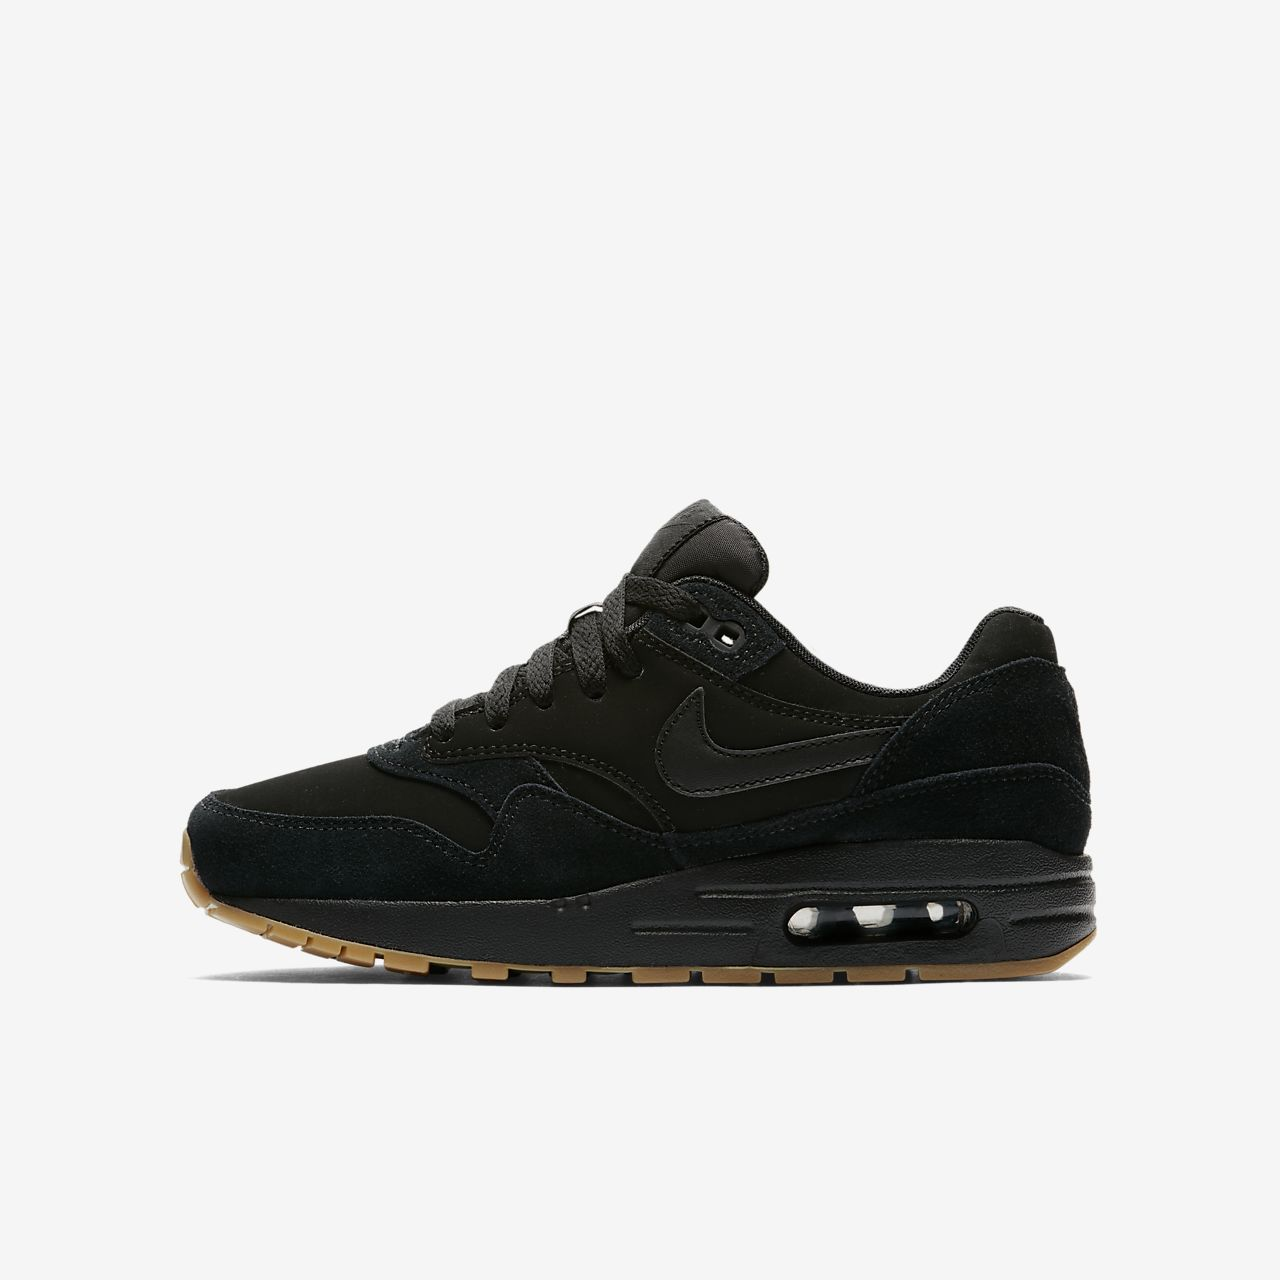 Nike Air Max 1 Kinderschoen